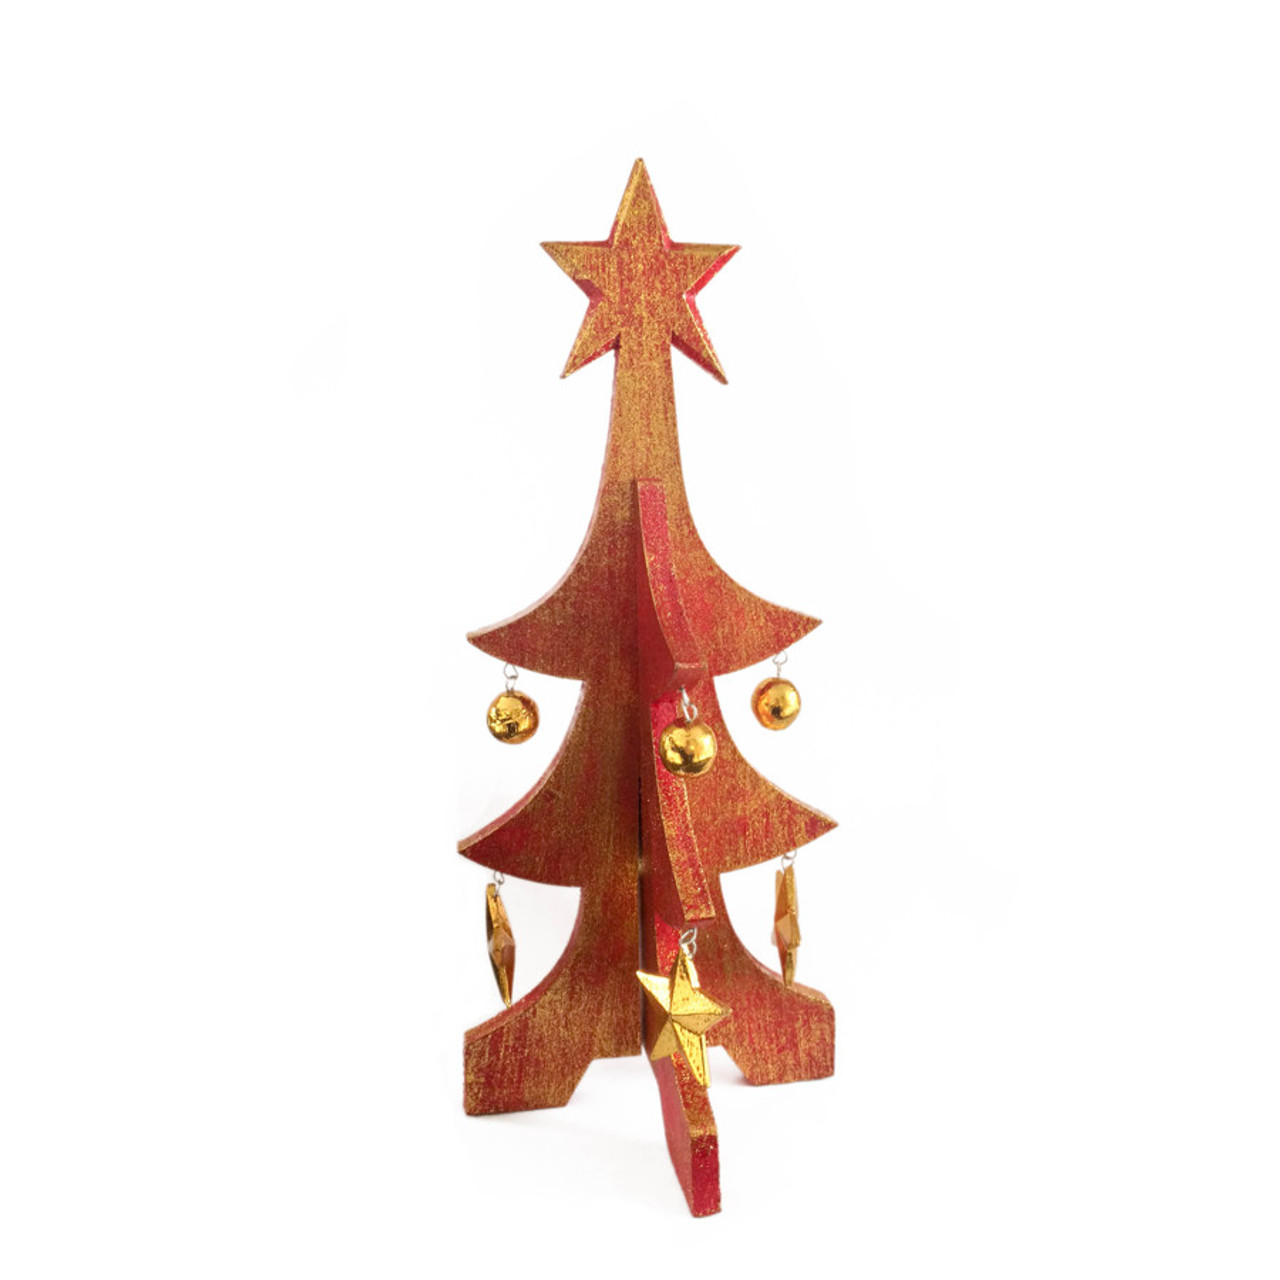 Wooden Christmas Tree.Small Red Wooden Christmas Tree